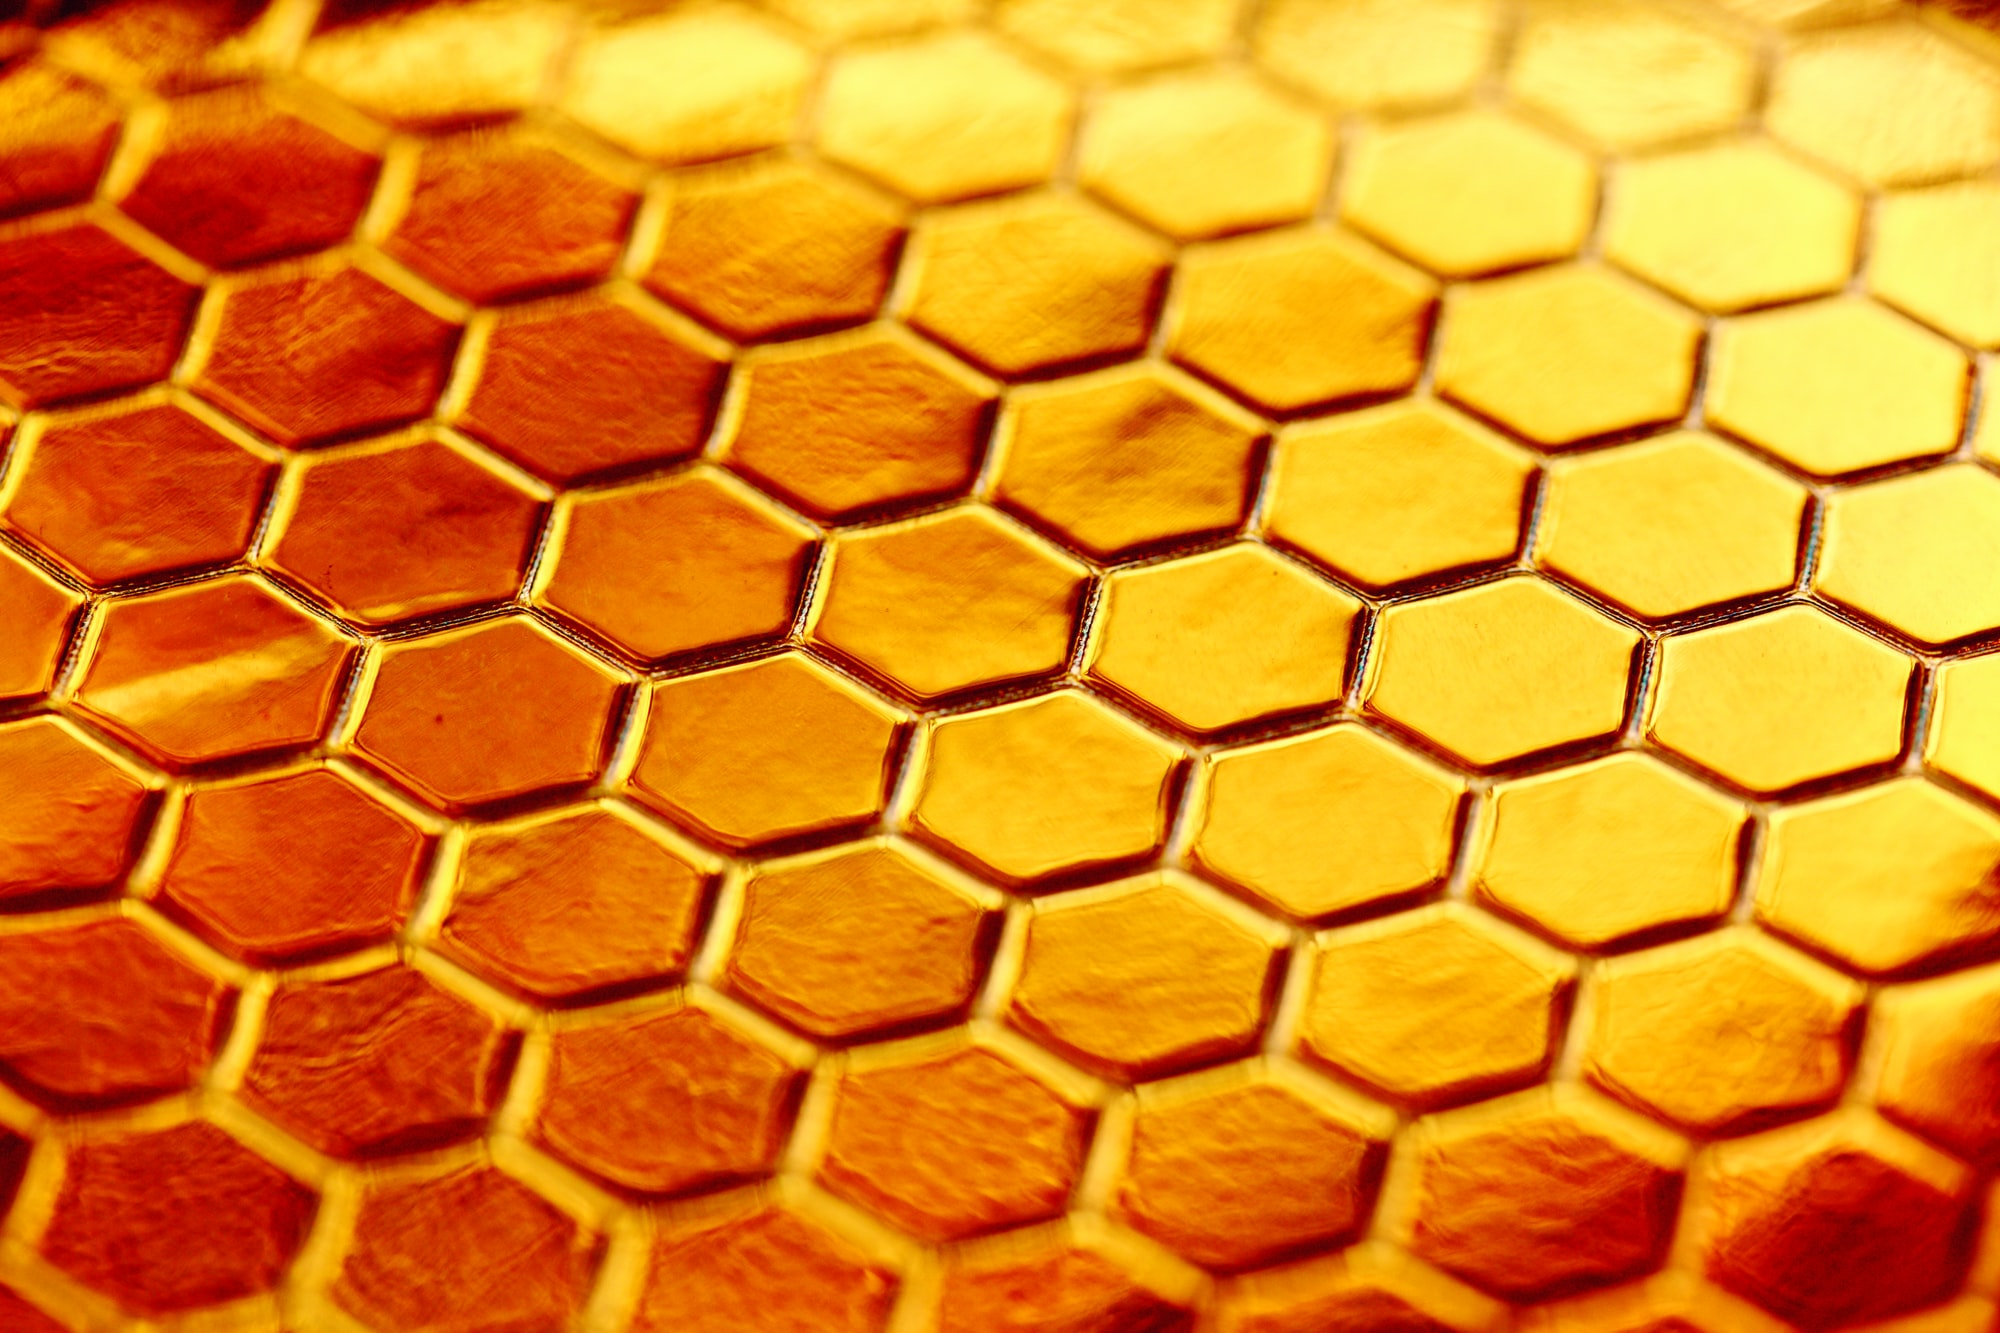 Why I Set Up Honeycomb on Small Projects